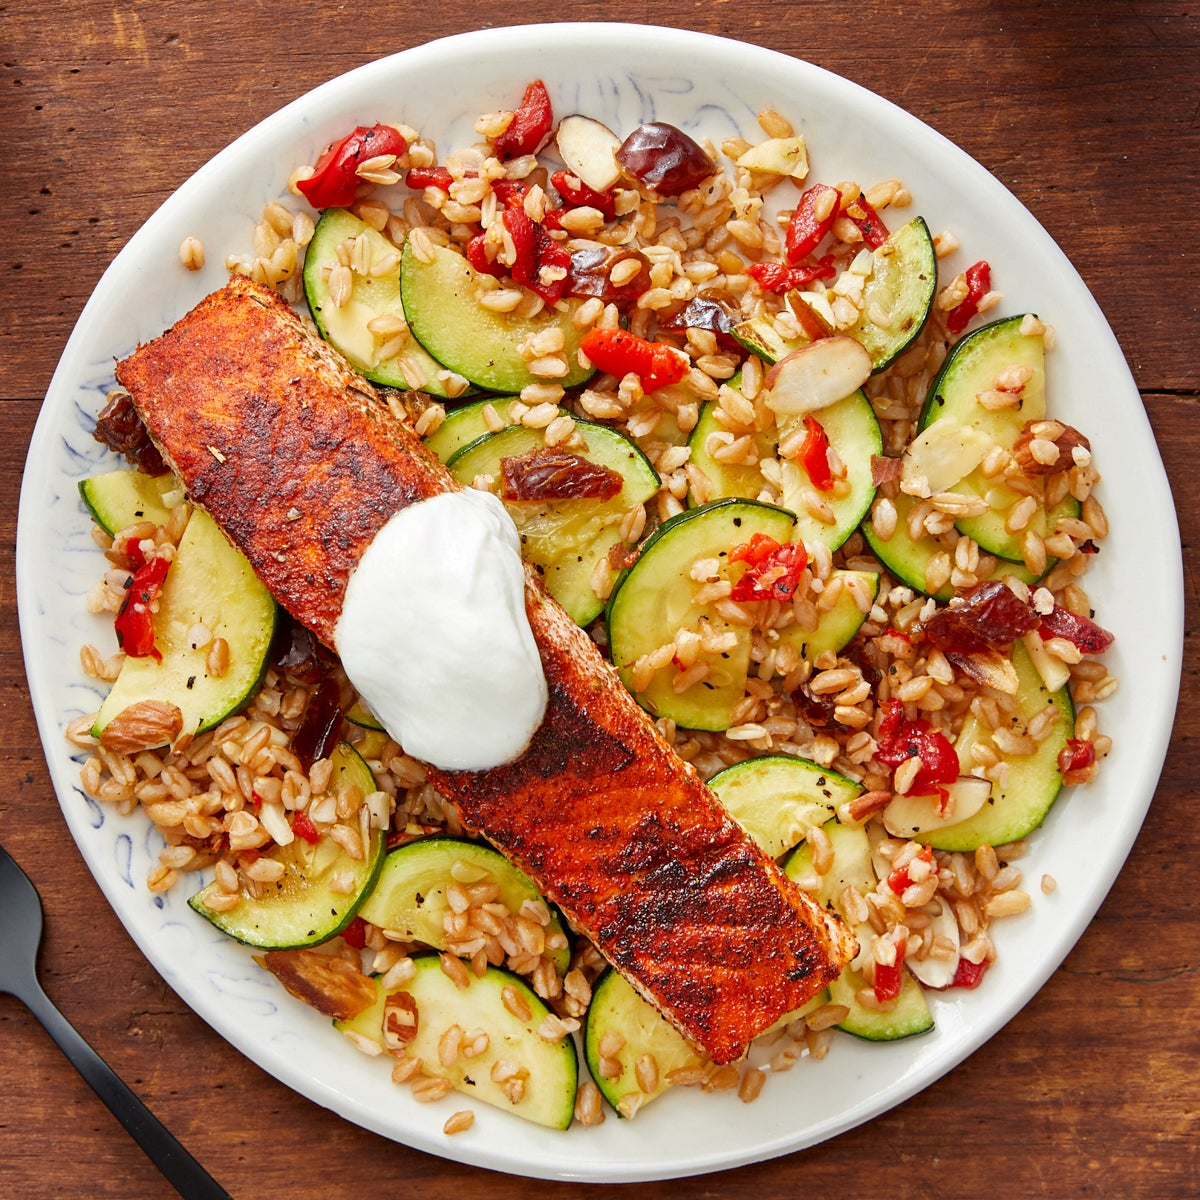 Spanish-Spiced Salmon with Farro & Zucchini Salad